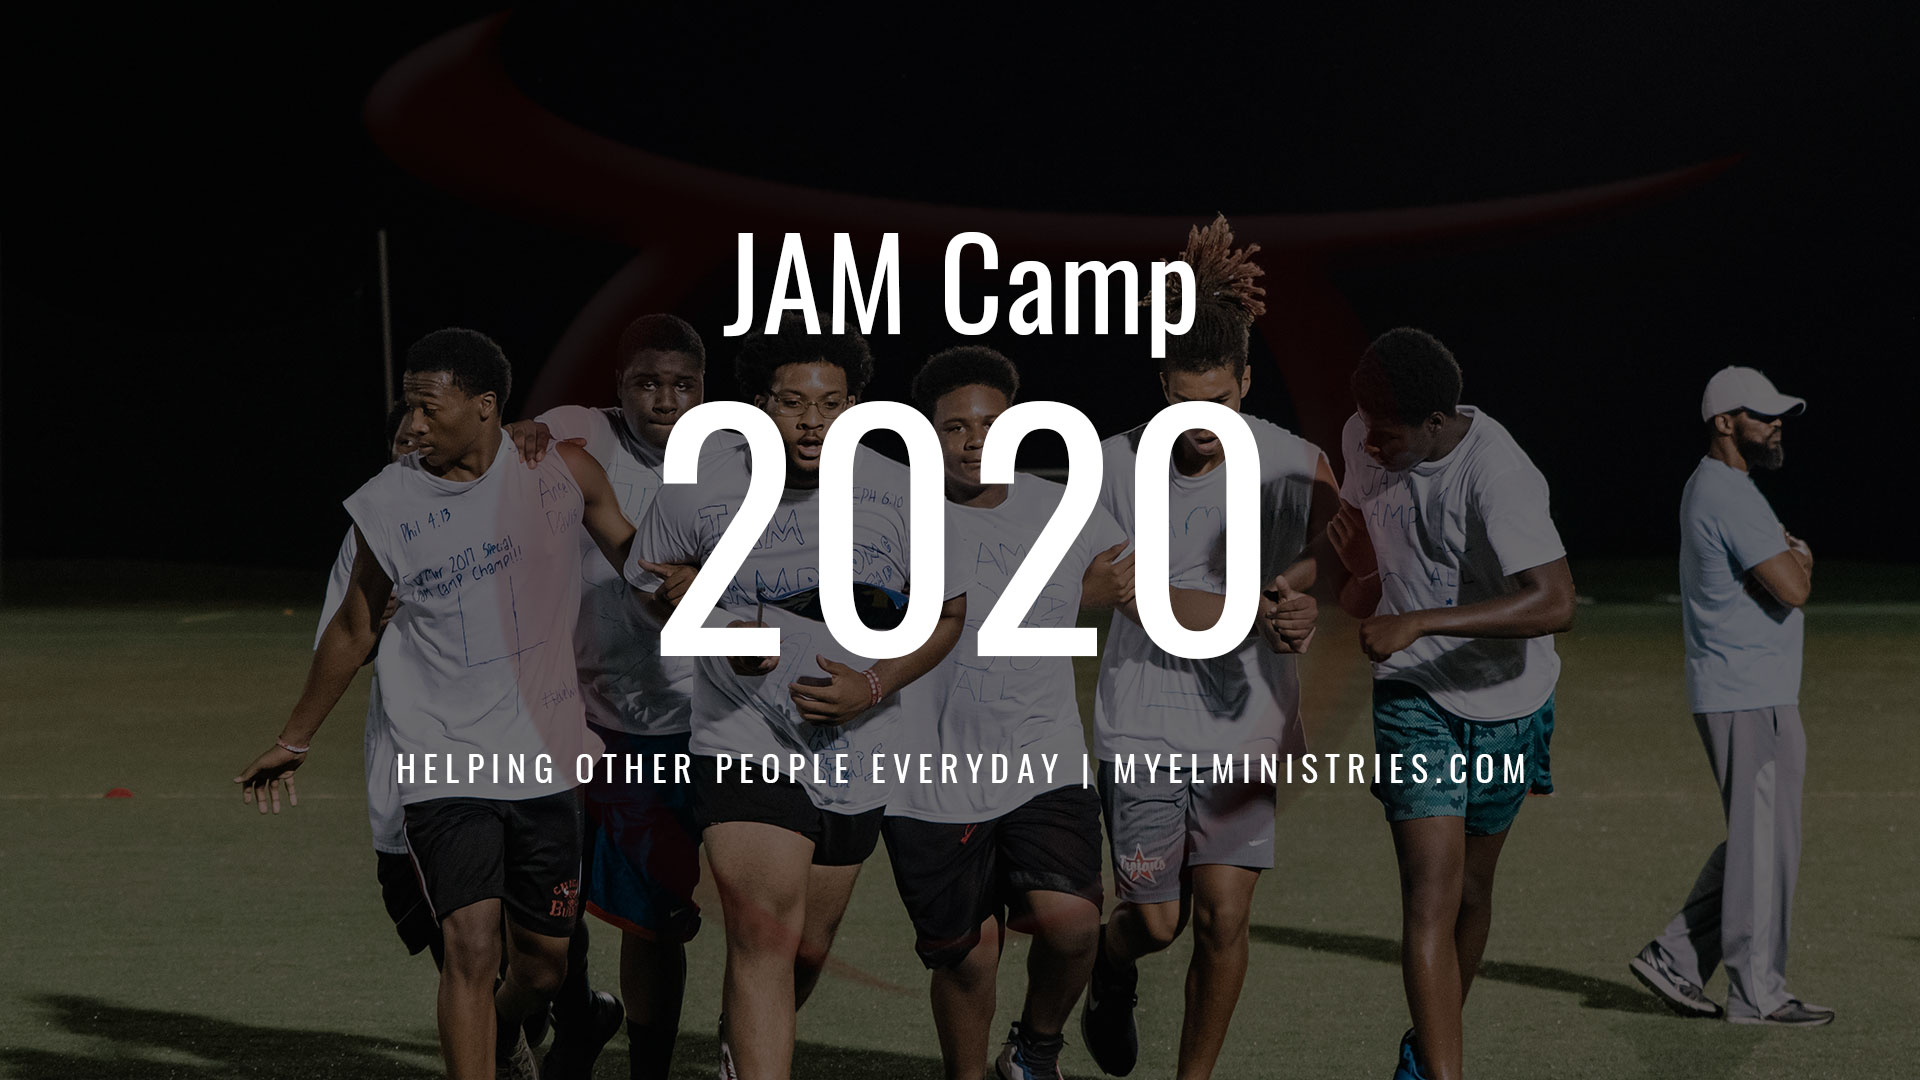 image for 2020 JAM Camp